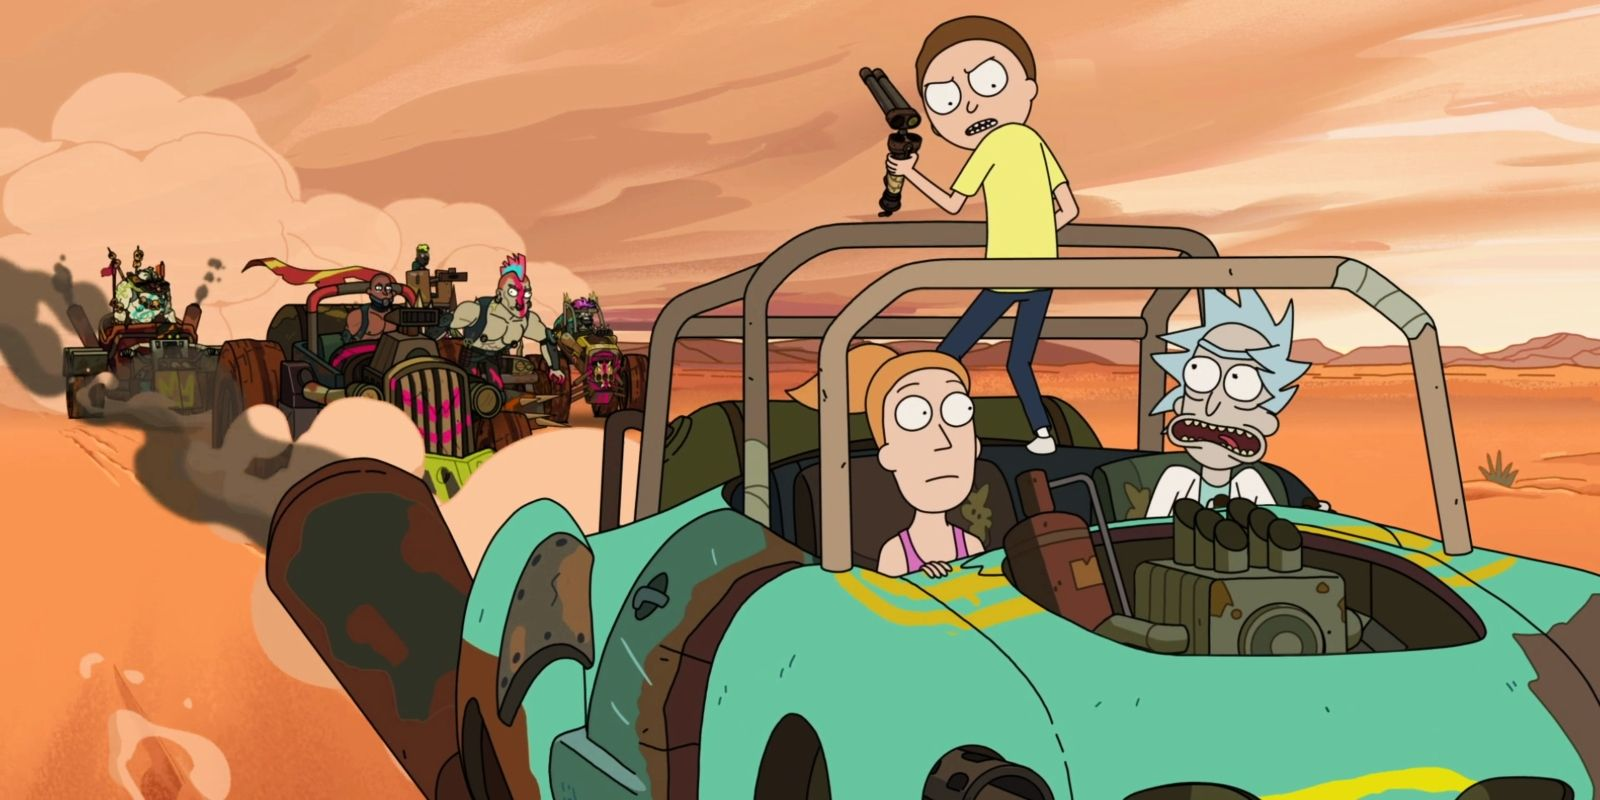 10 Times Rick And Morty Stole From Other Shows & Movies